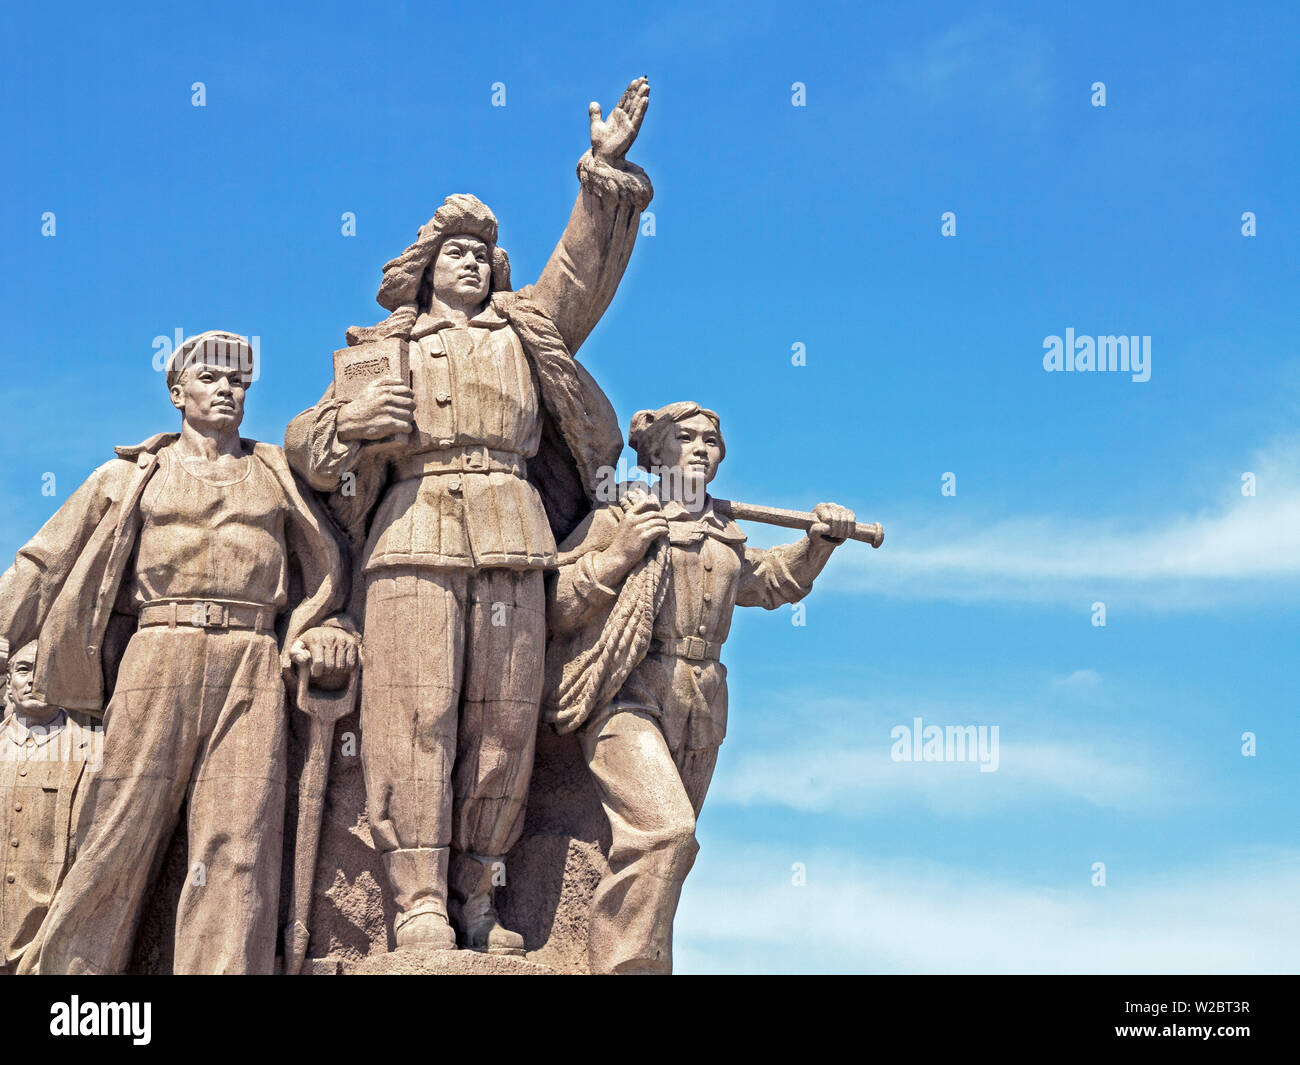 China, Beijing, Statue of marching Chinese army soldiers in front of Chairman Mao Memorial Hall / Mausoleum, Tiananmen Square - Stock Image